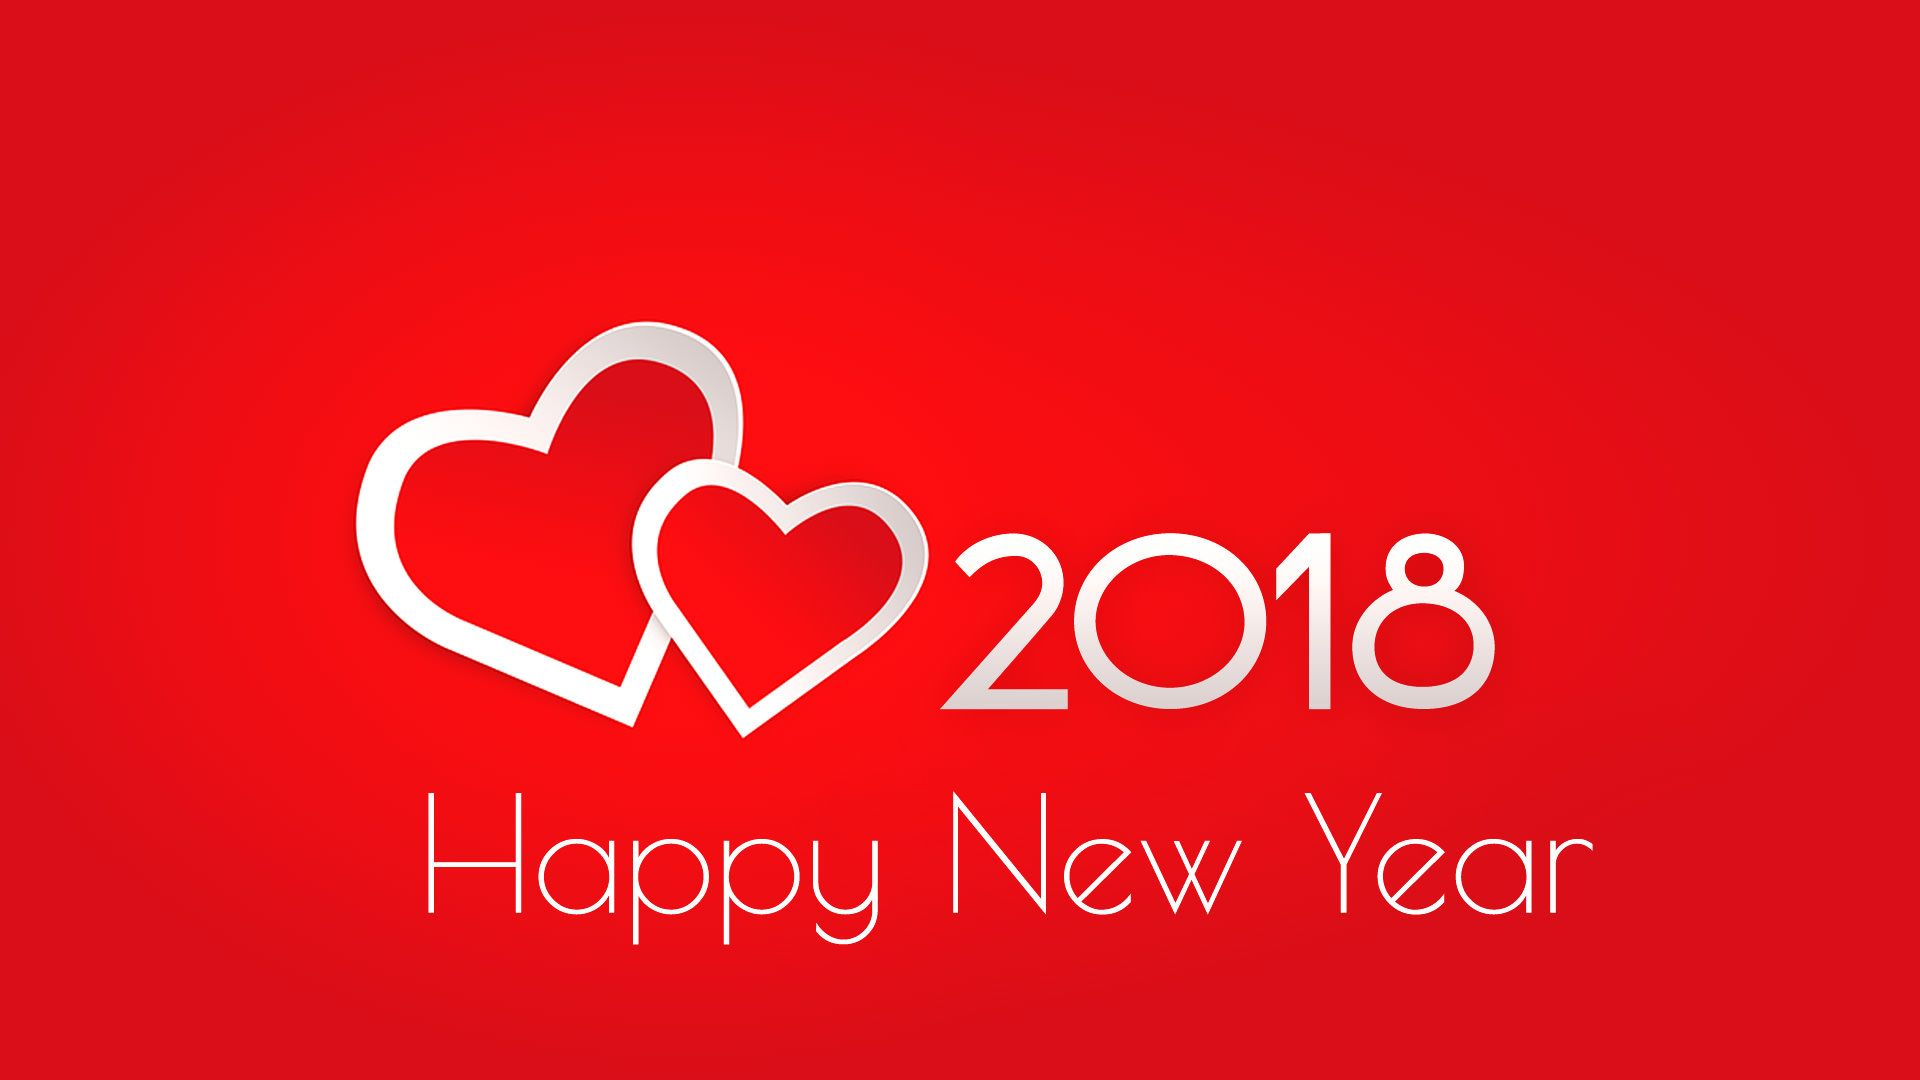 most loving and beautiful happy new year 2018 wallpaper for lover or